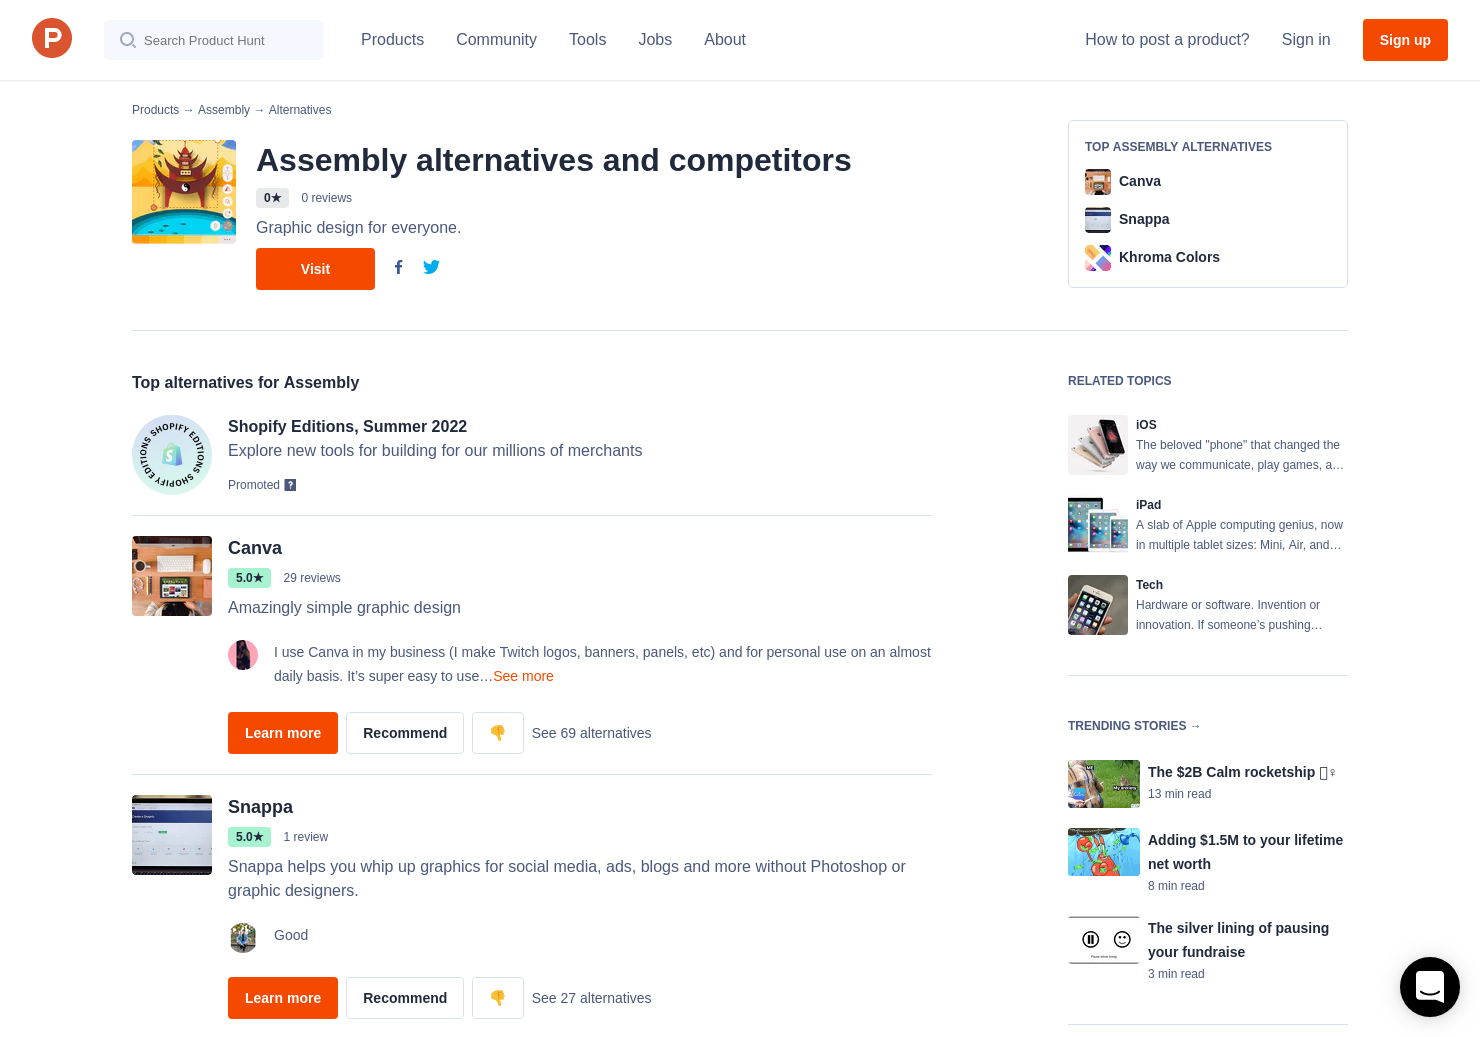 9 Alternatives to Assembly for iPhone, iPad | Product Hunt